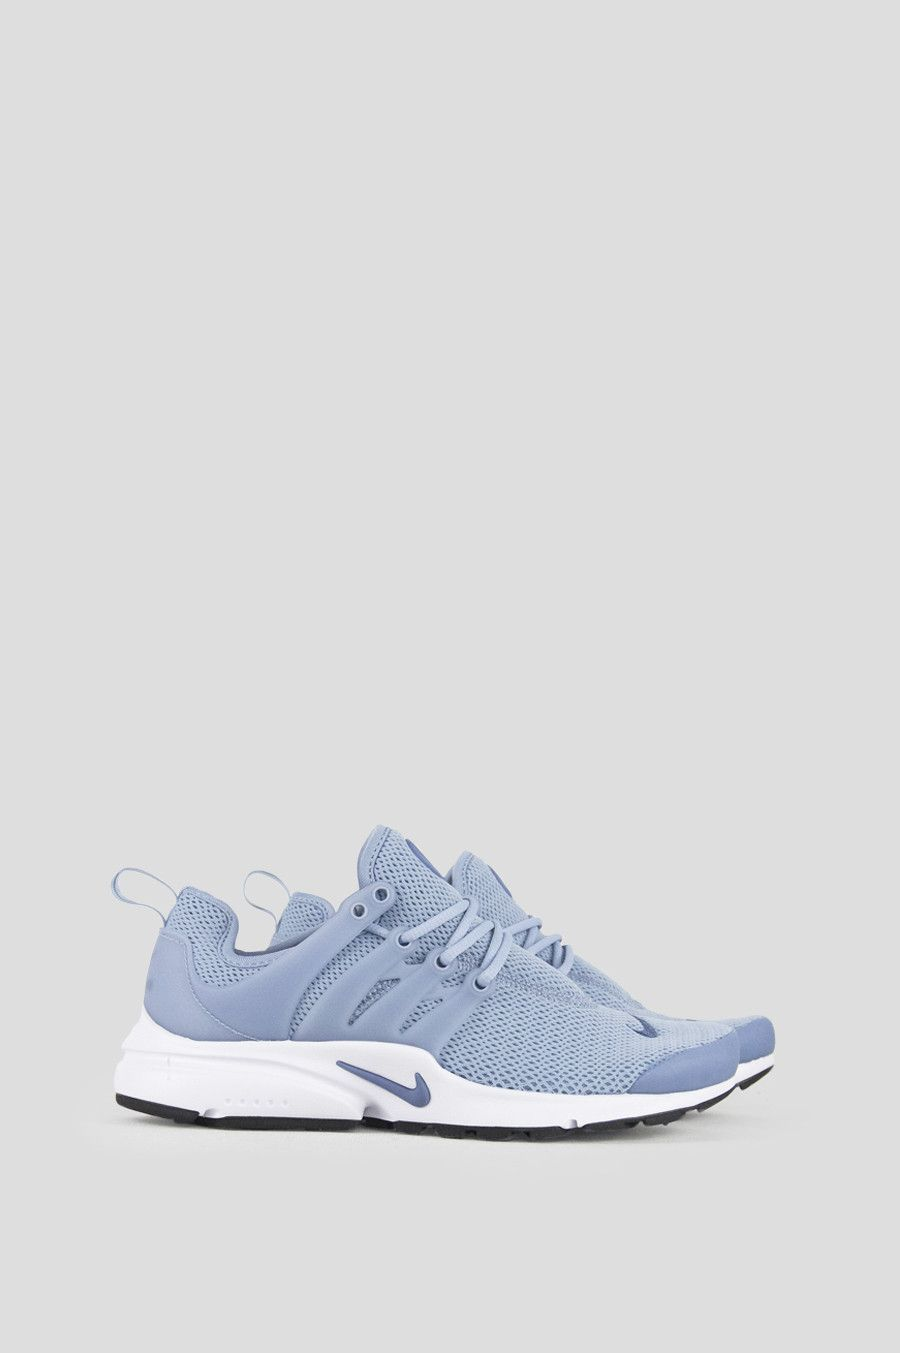 new arrival eb481 d6e79 The Nike Air Presto Women s Shoe is inspired by the comfort and minimalism  of a classic T-shirt for lightweight everyday comfort. - Product Code   878068-400 ...